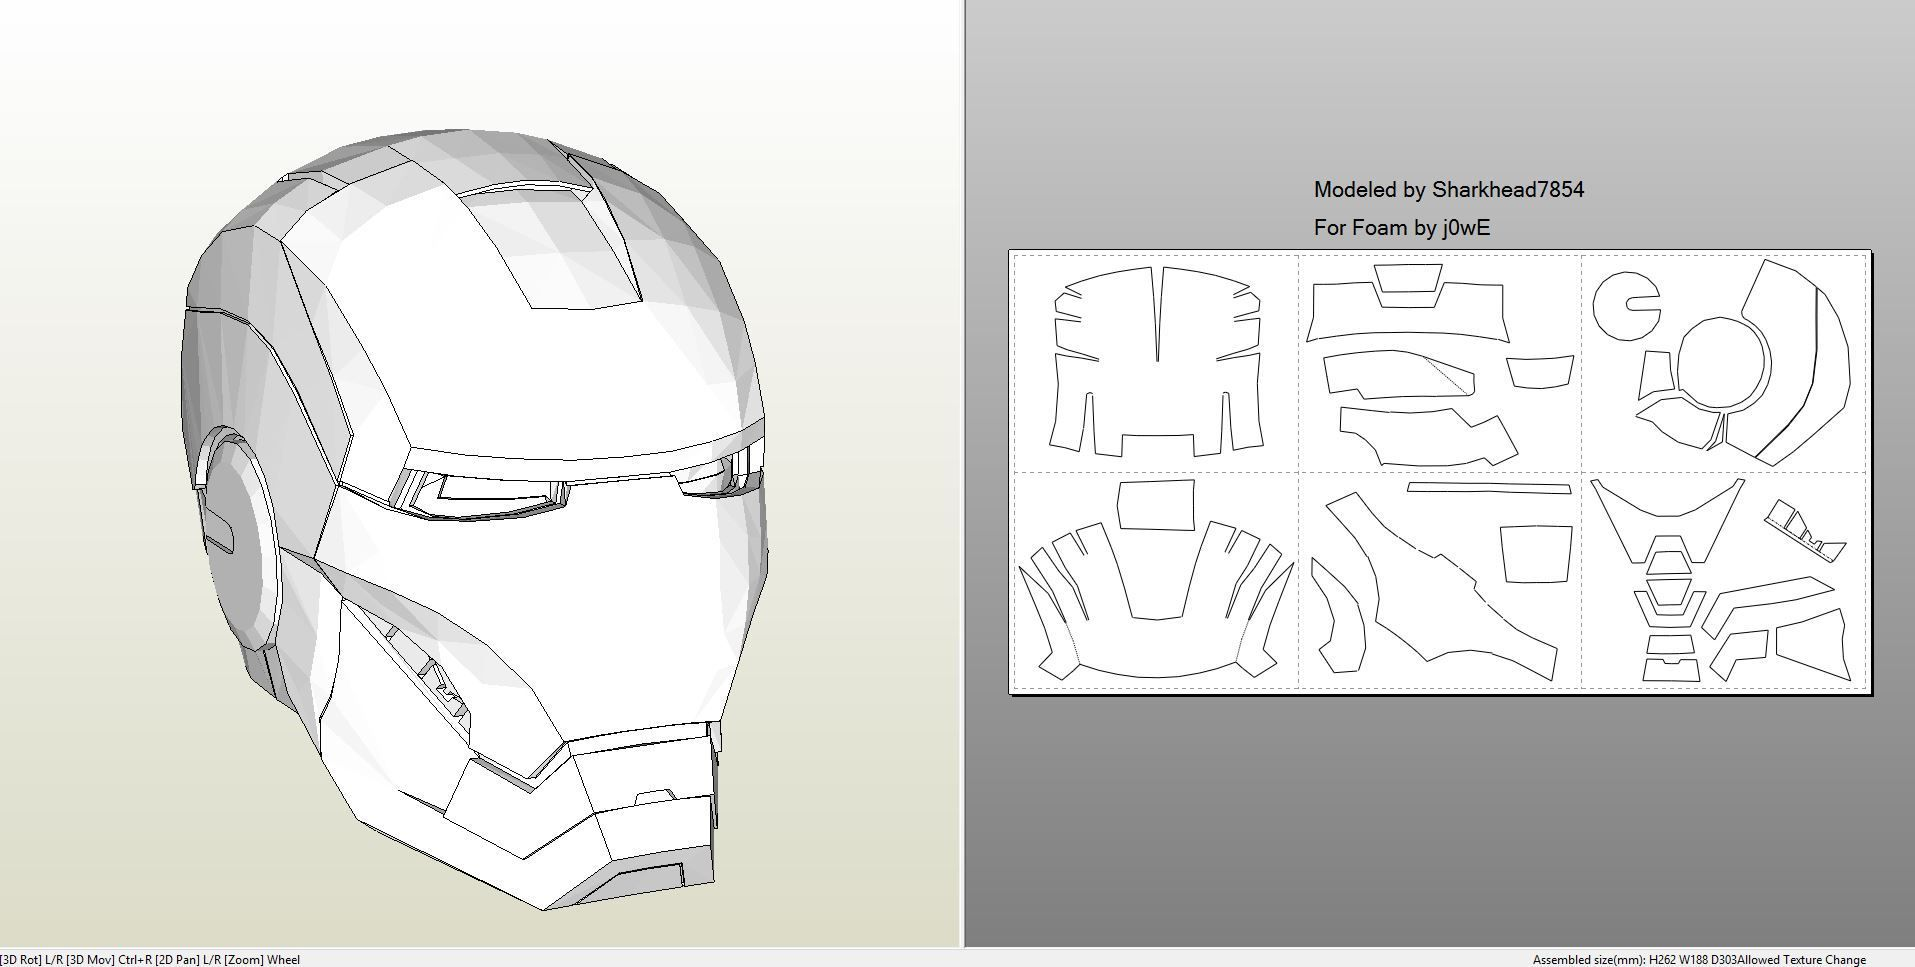 Papercraft pdo file template for iron man mark 4 6 full armor papercraft pdo file template for iron man mark 4 6 full armor maxwellsz